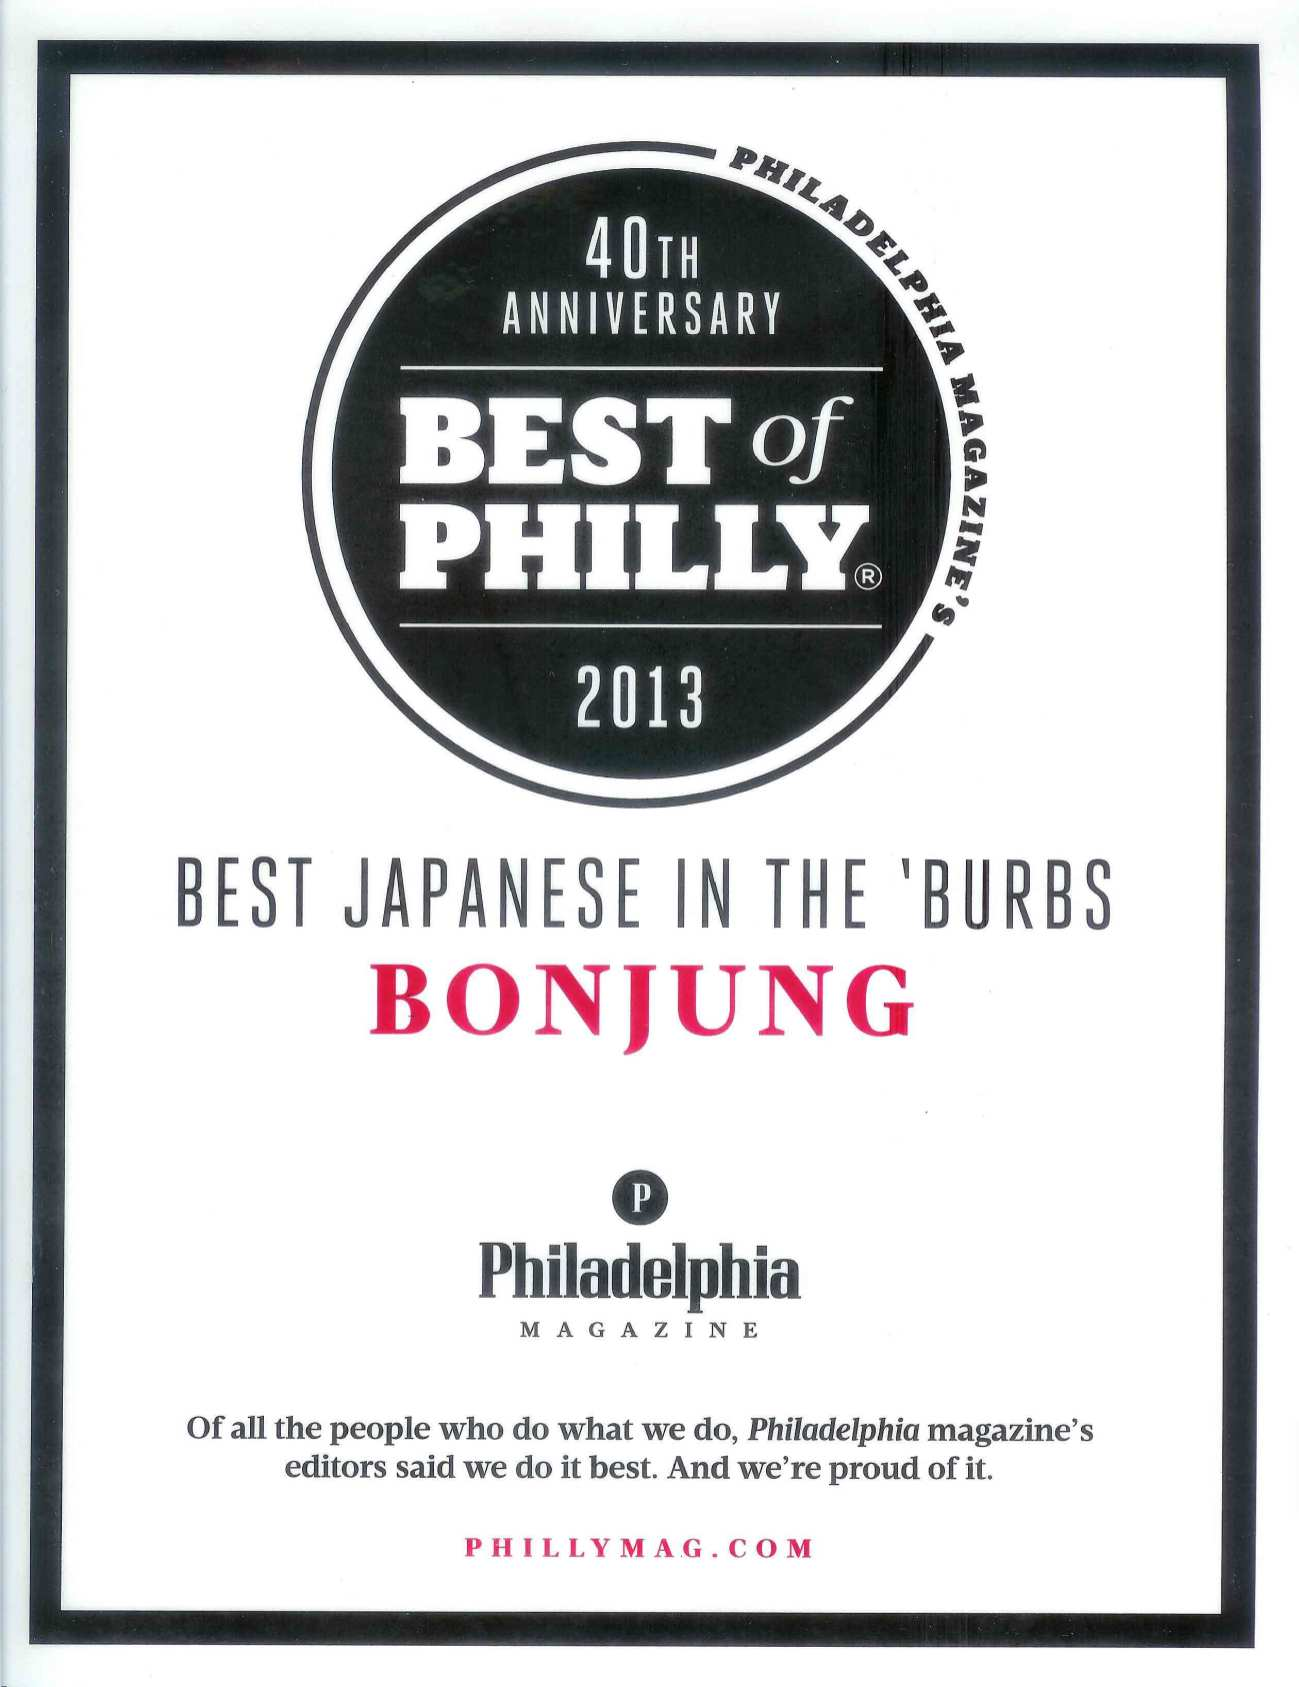 Best-of-Philly-2013-Bonjung-web